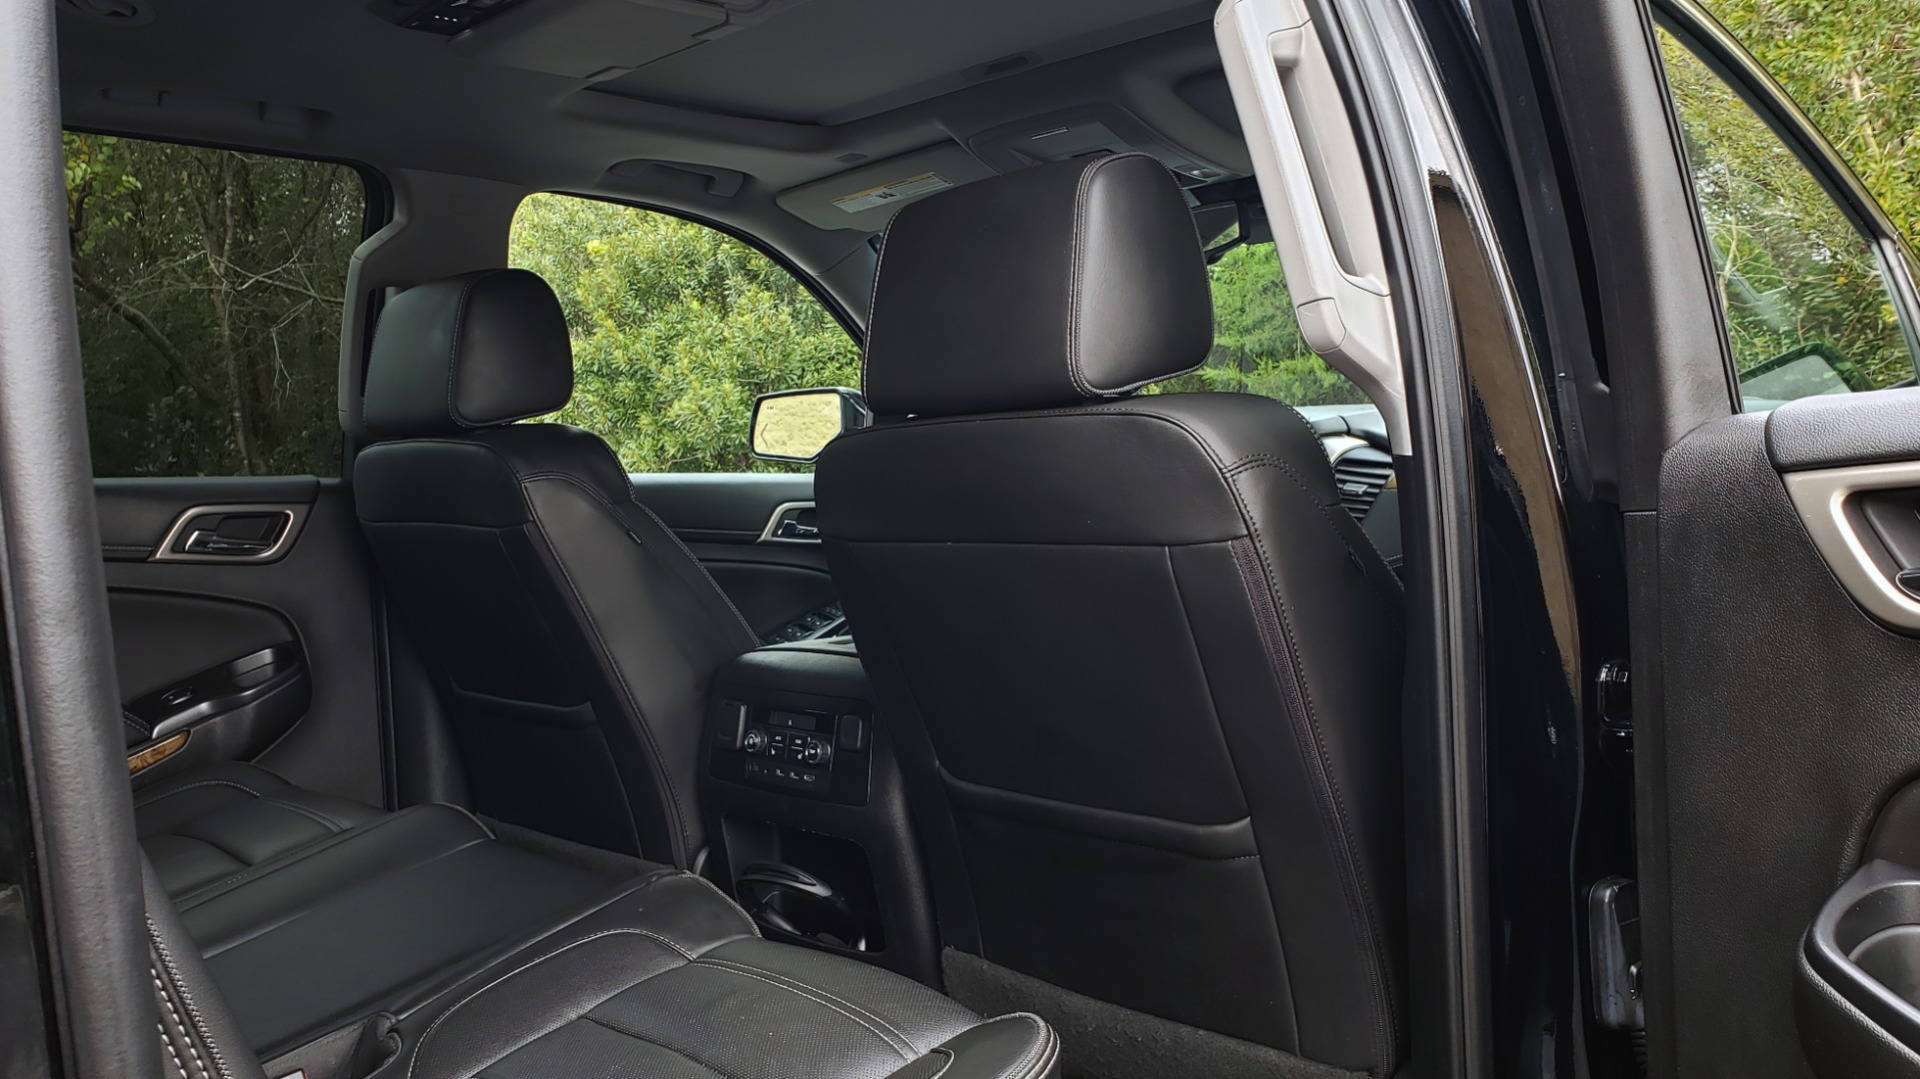 Used 2017 GMC YUKON XL DENALI 4WD / NAV / SUNROOF / ENT / 3-ROWS / BOSE / REARVIEW for sale Sold at Formula Imports in Charlotte NC 28227 86